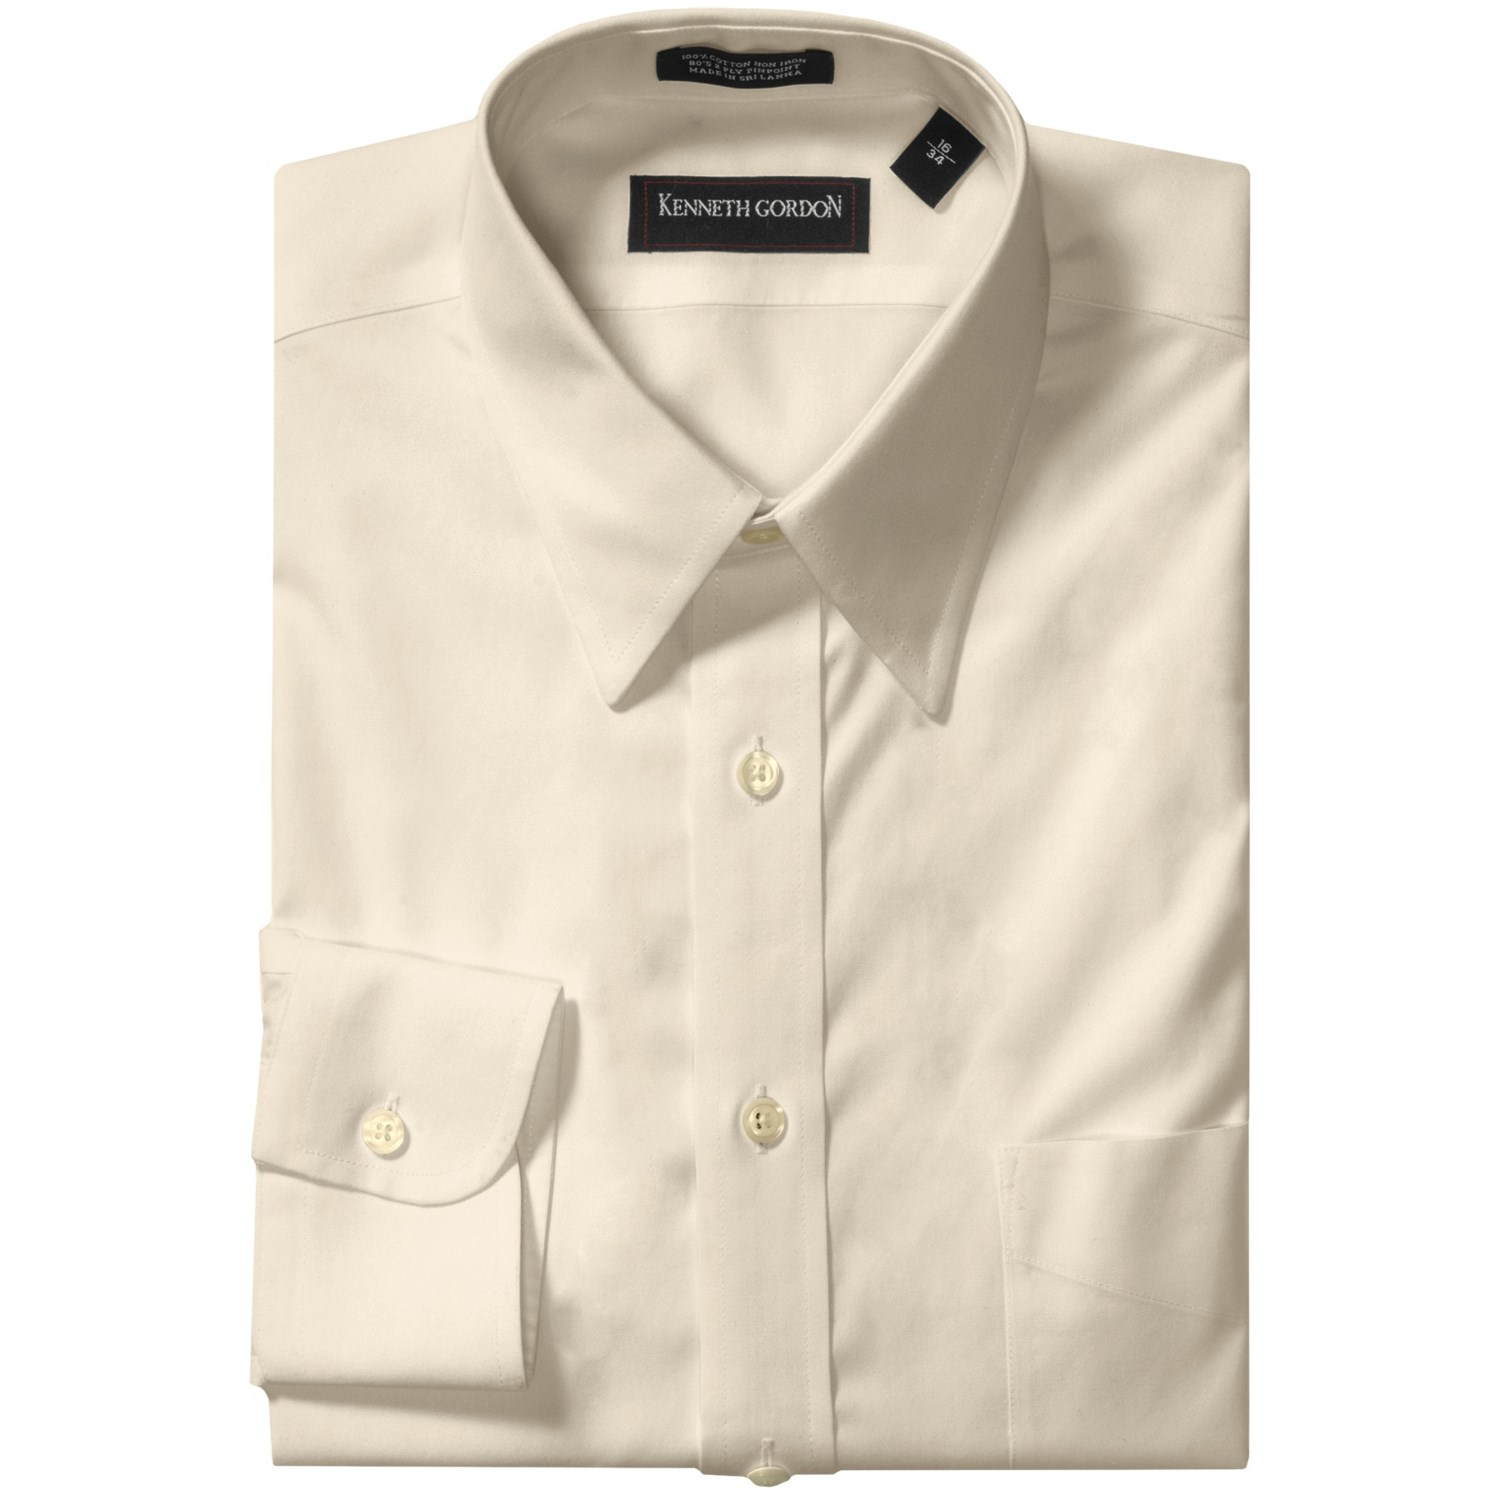 kenneth gordon non iron cotton dress shirt for men